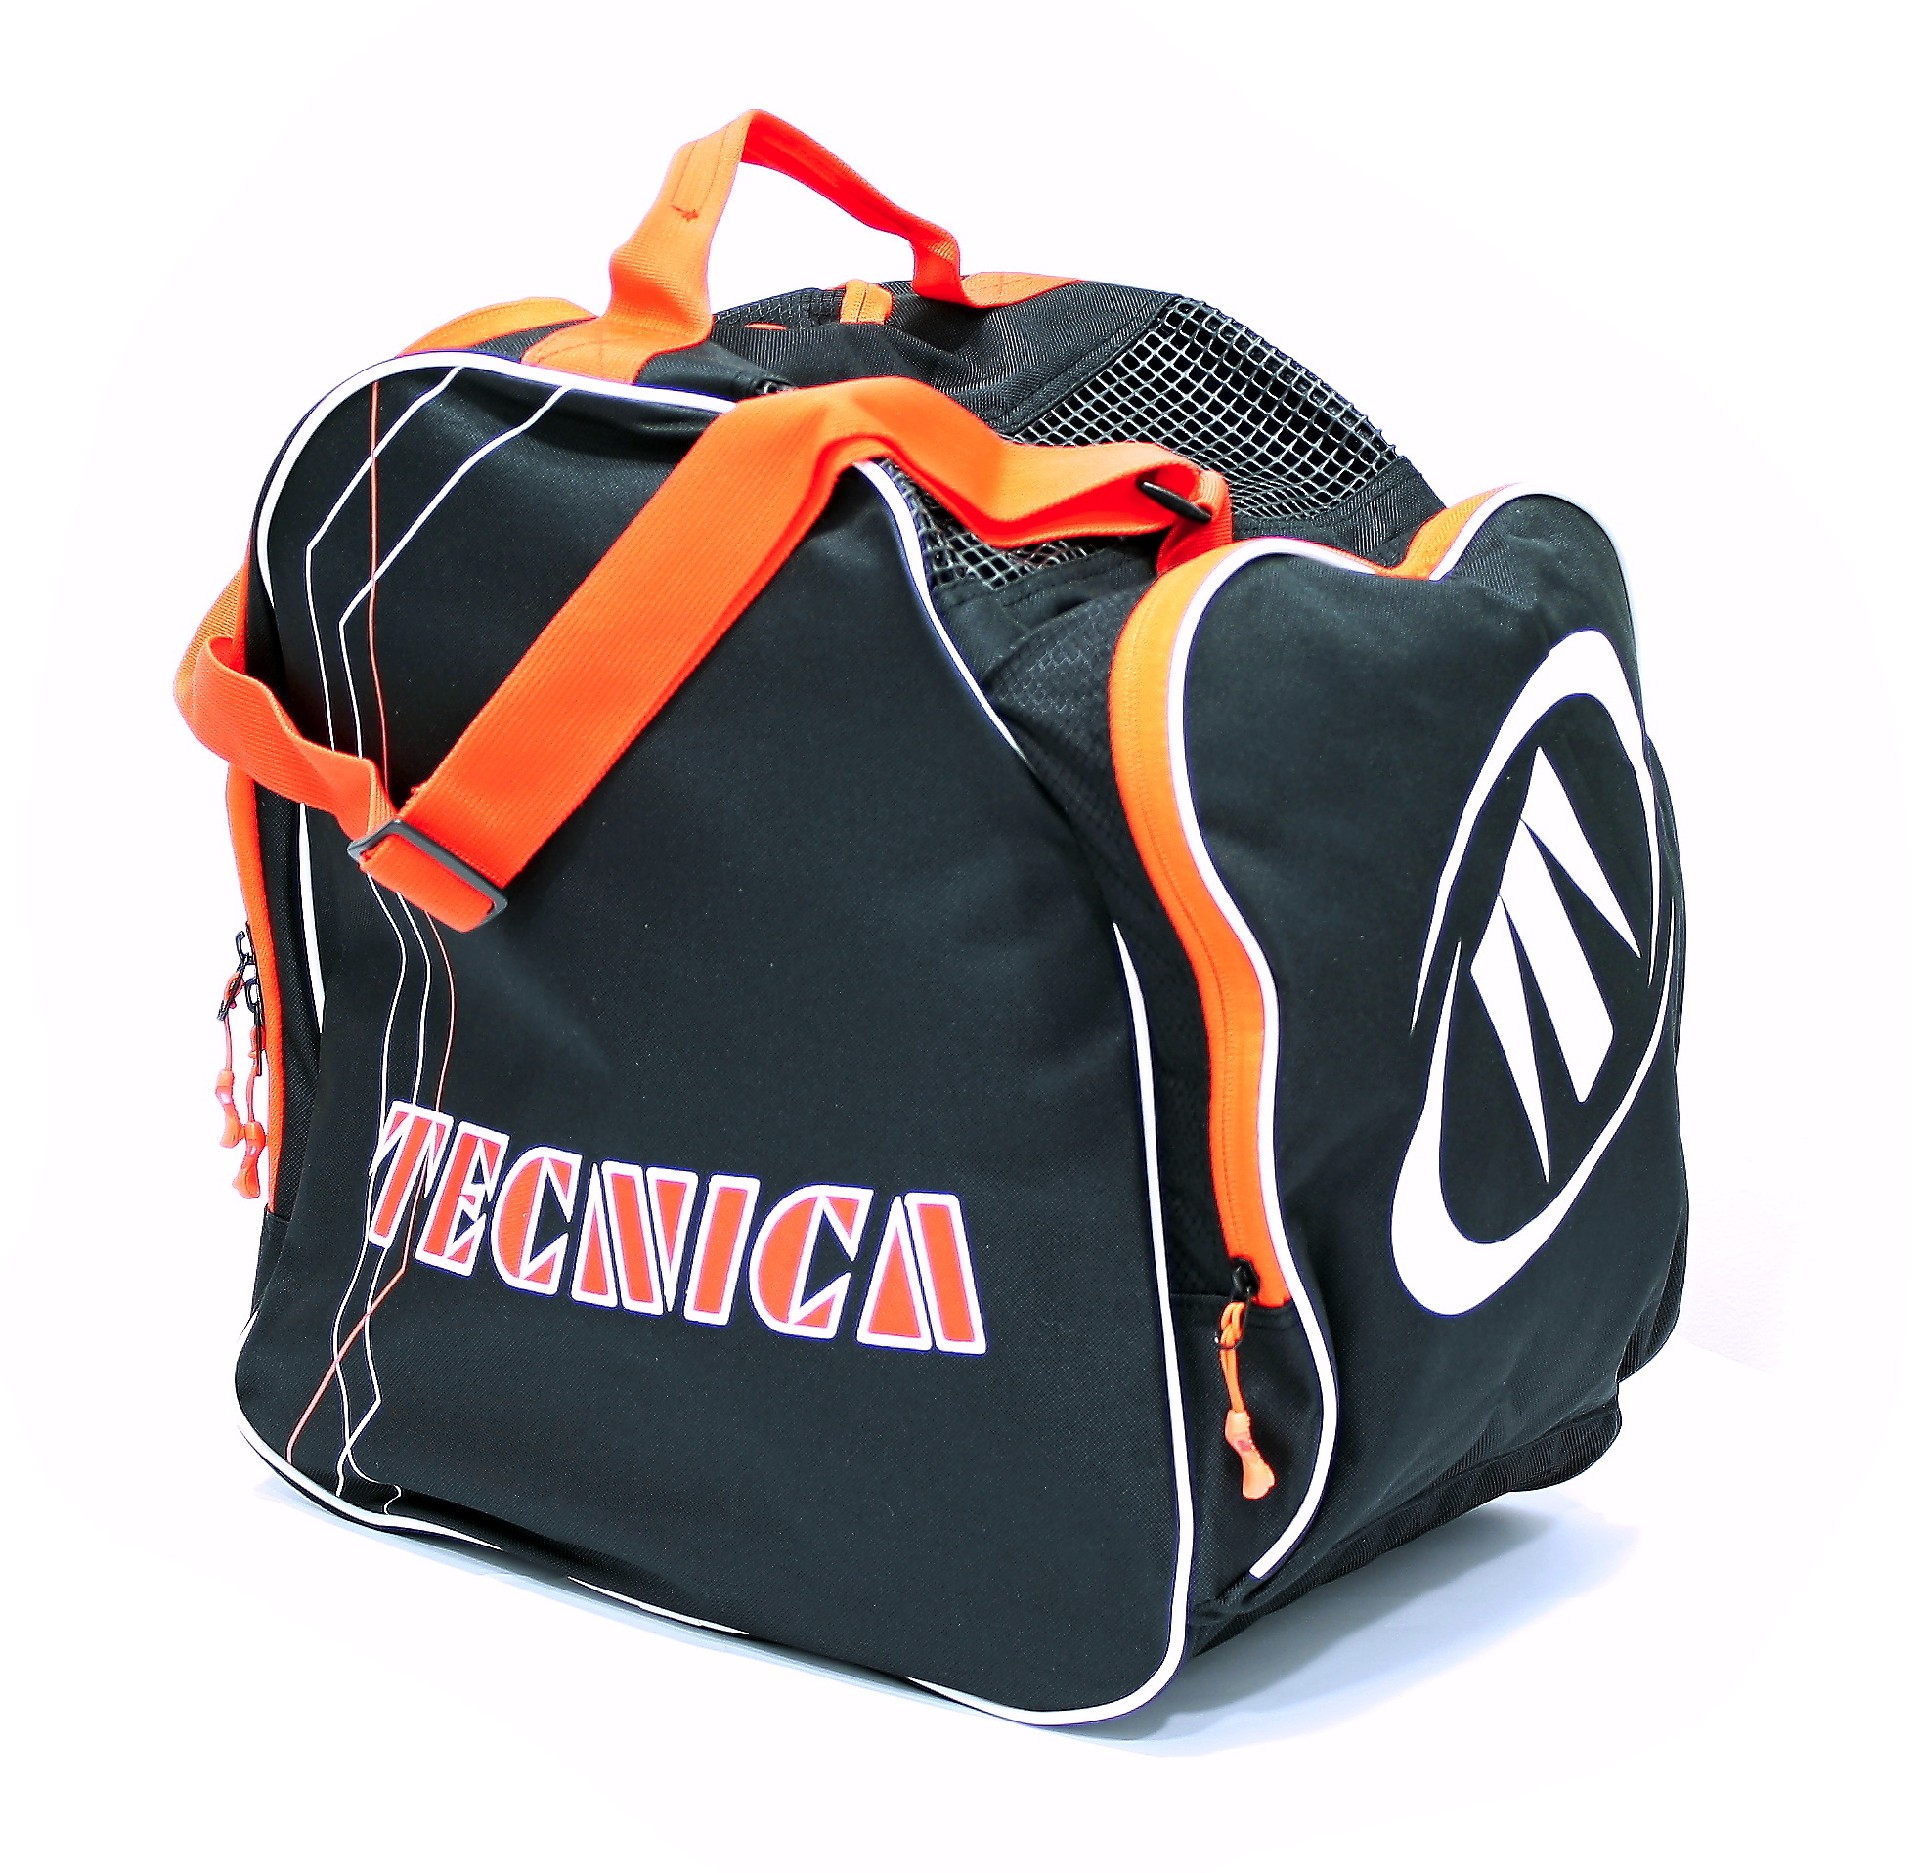 TECNICA Skiboot bag Premium, black/orange